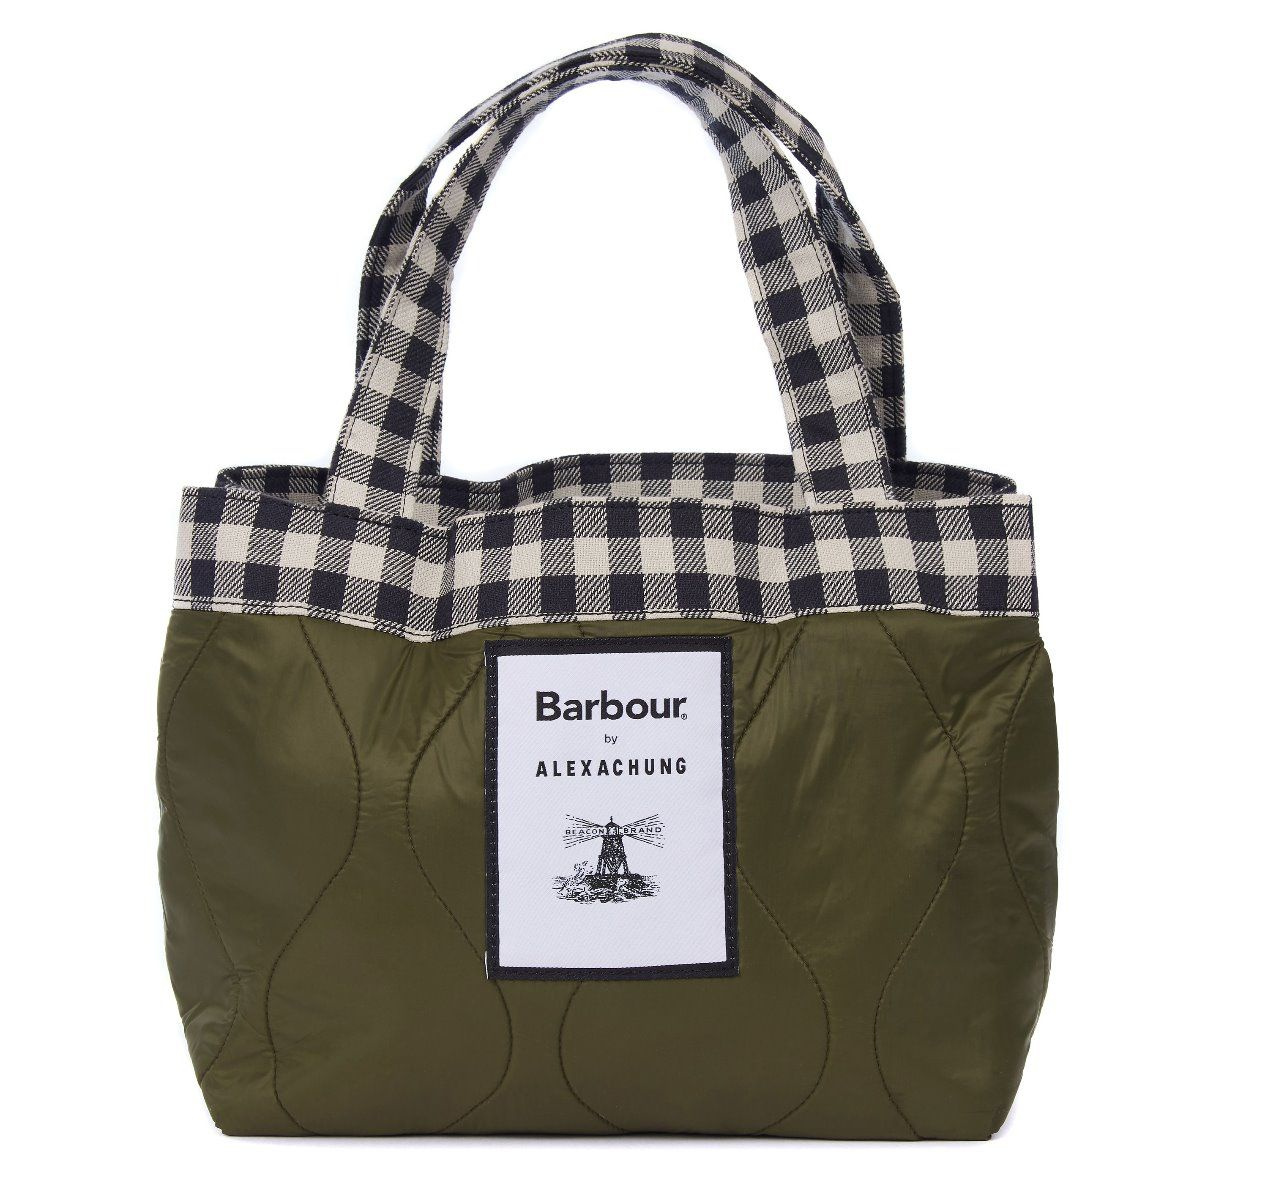 Barbour by A Chung Quilted Mini Tote Bag